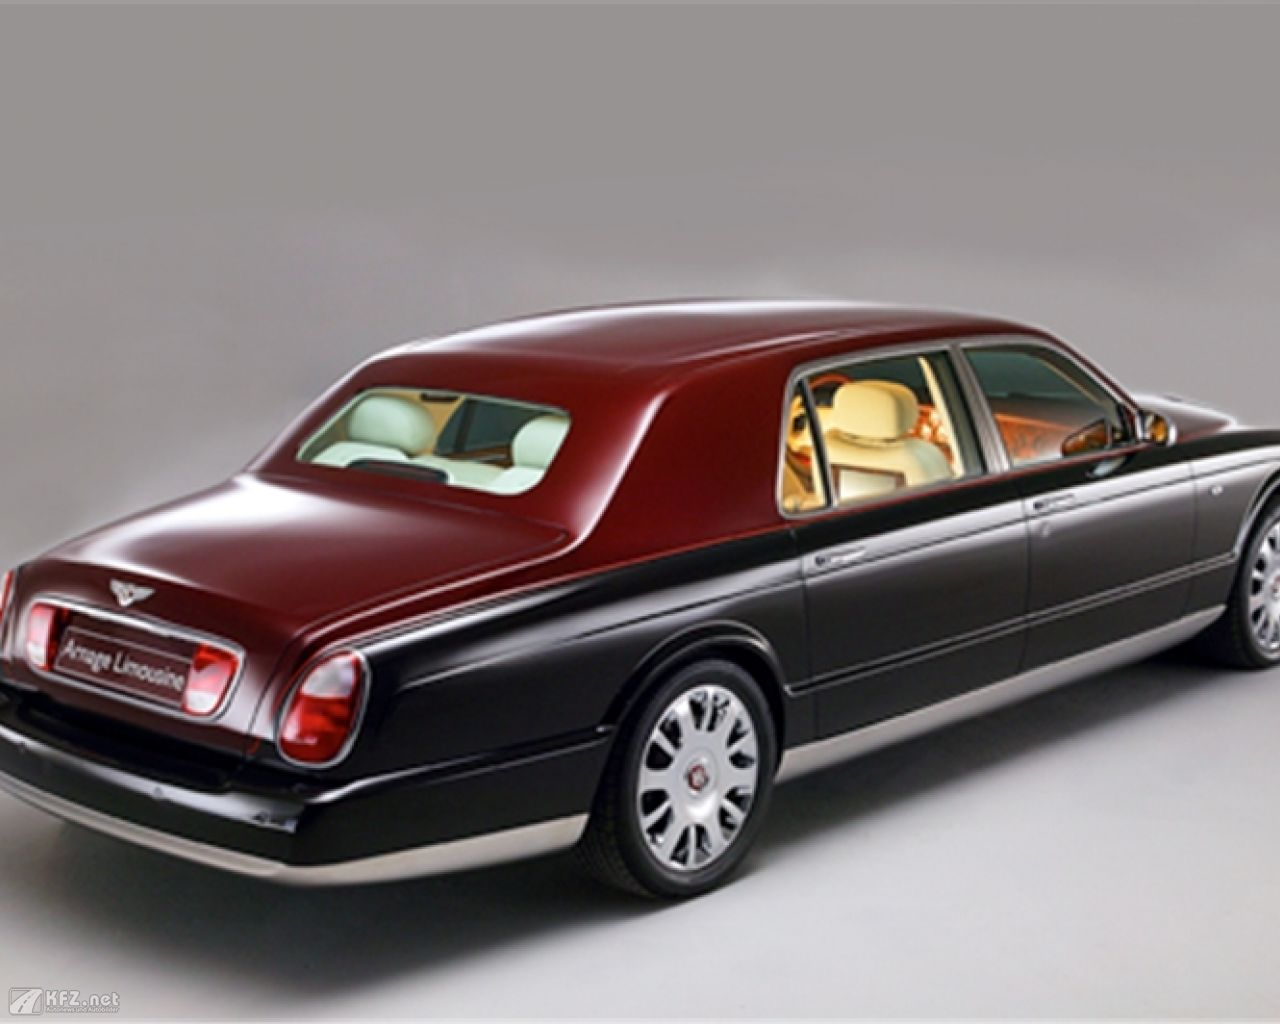 bentley-arnage-1280x1024-4